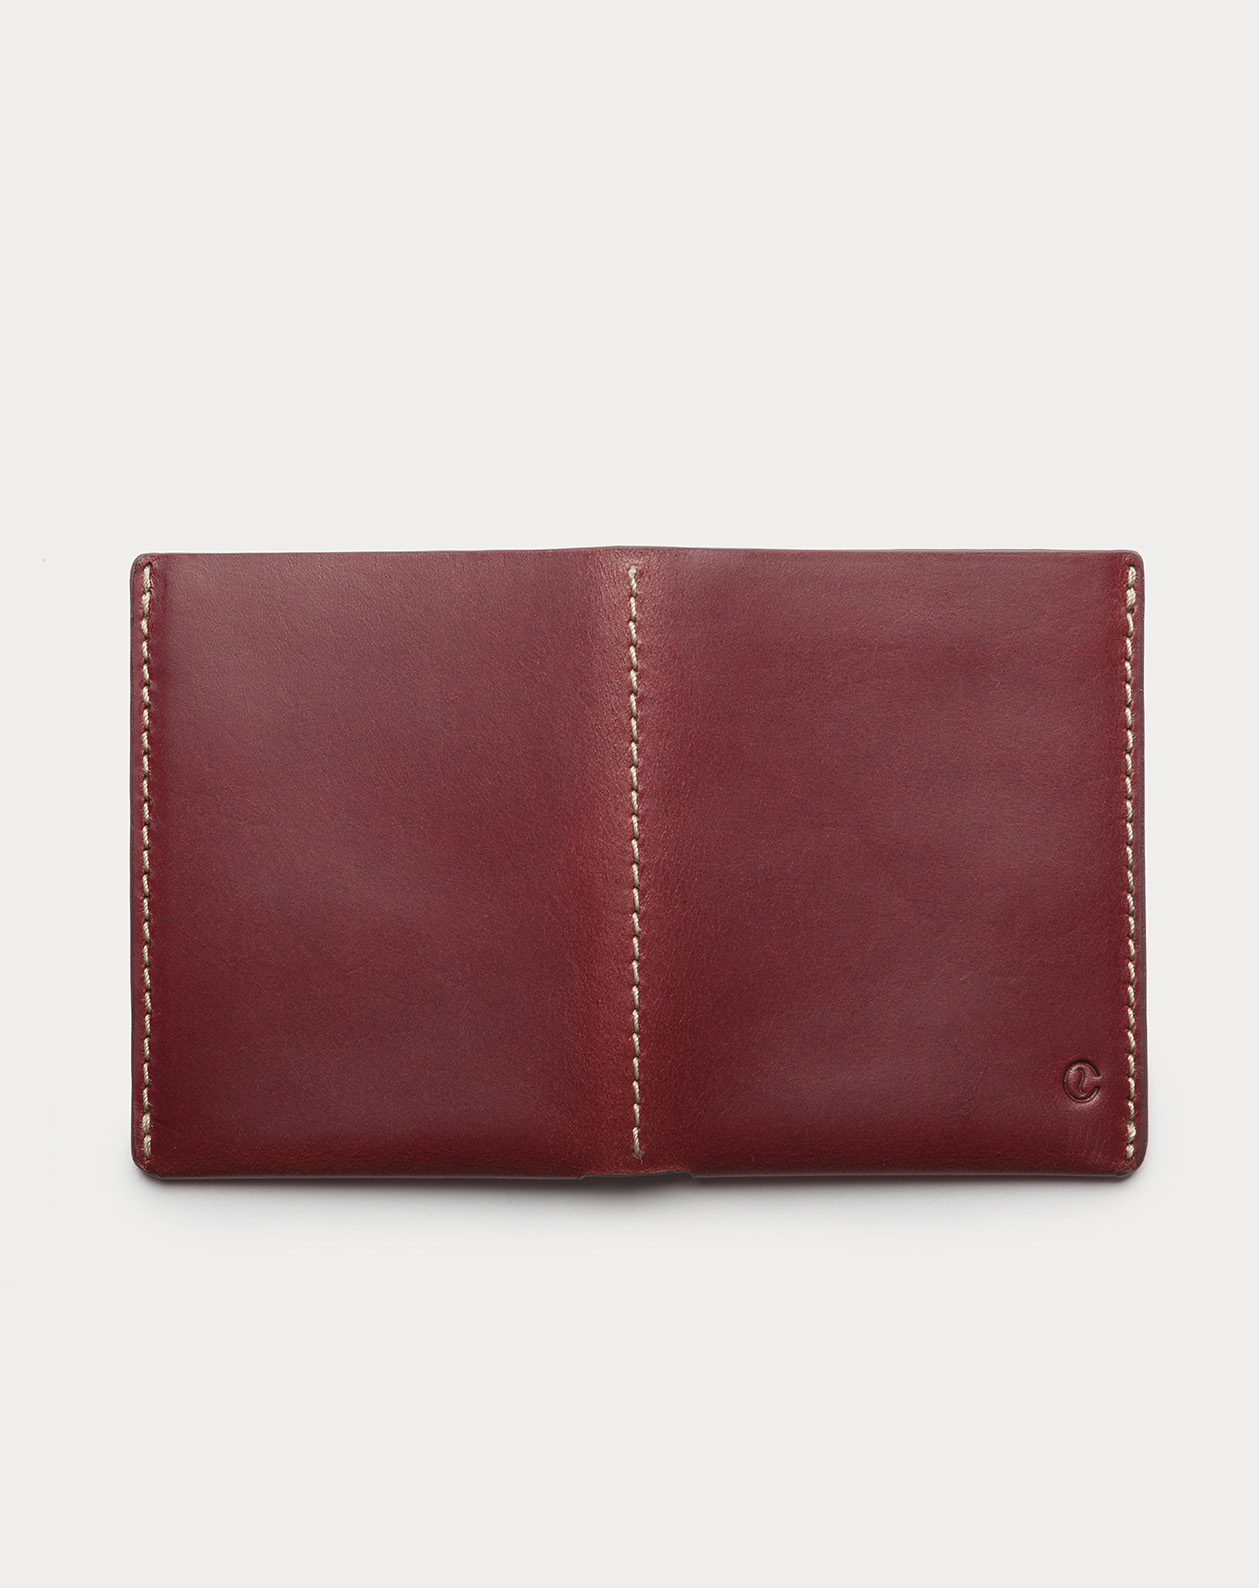 slim wallet red for cards and bills